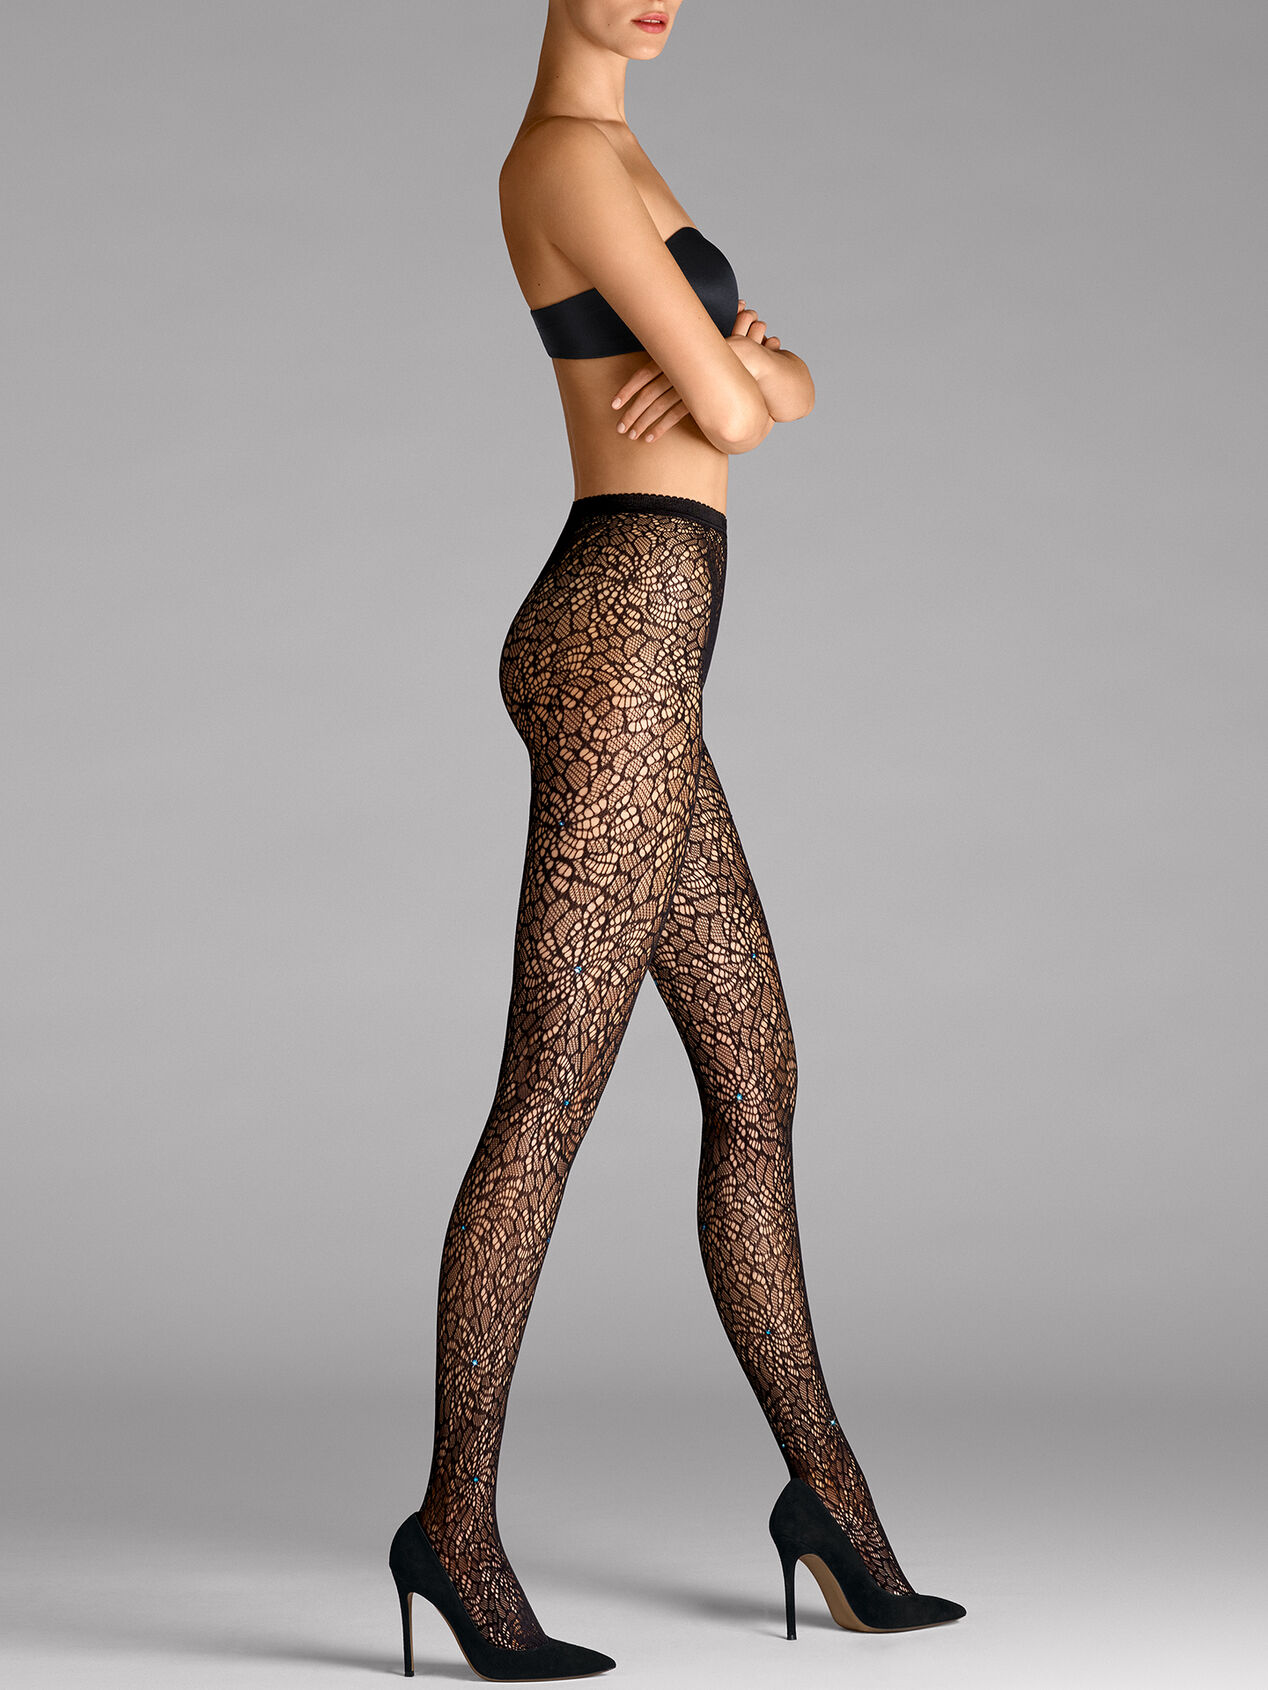 dab290620 Lace Tights